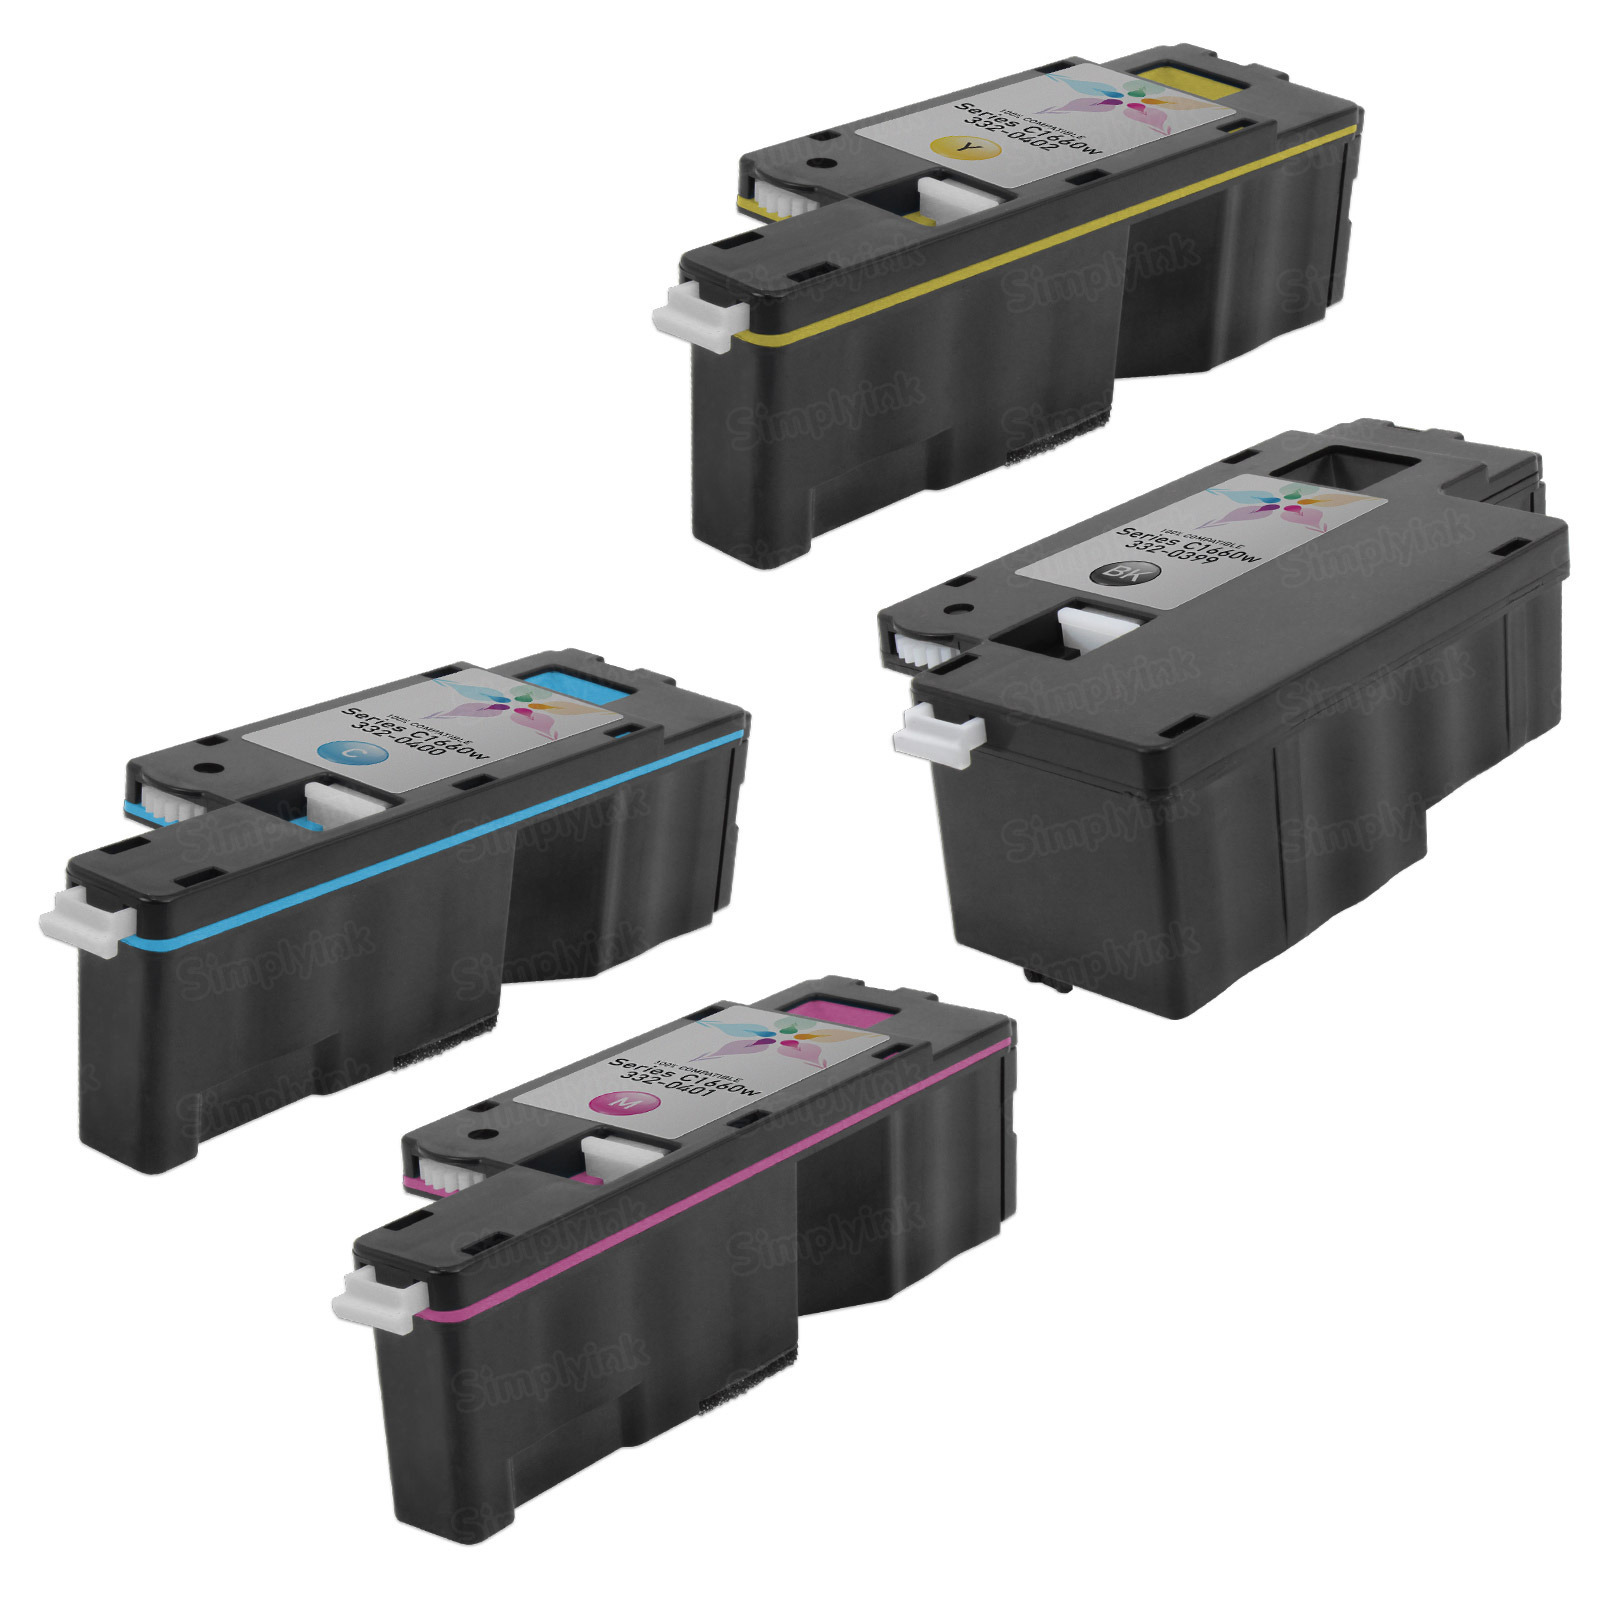 Alternative Toner for Dell C1660w 4-Pack - Black, Cyan, Magenta, Yellow